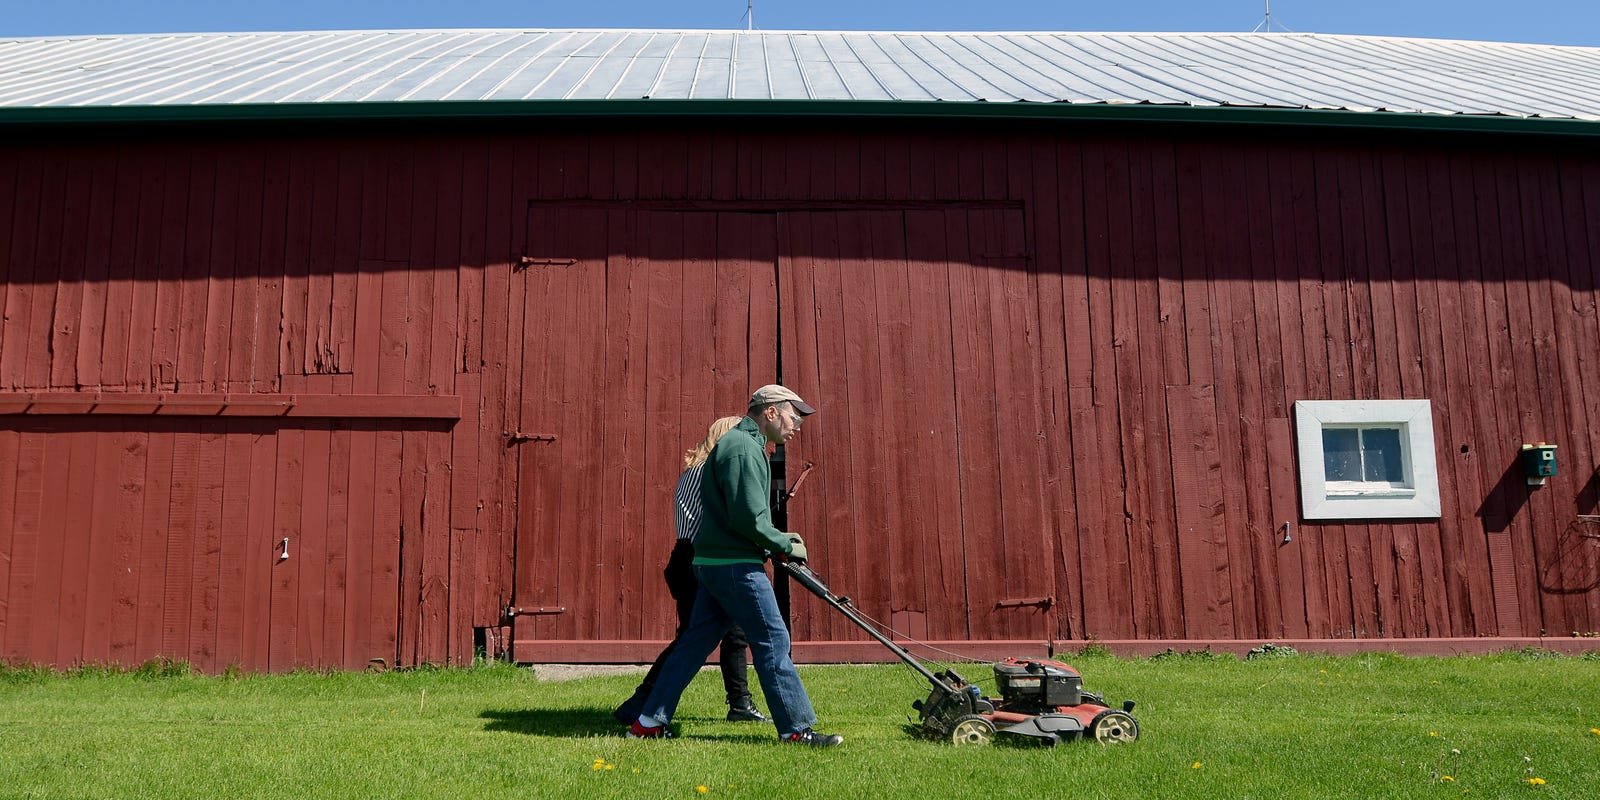 Officials Clarify Lawn Care Rules